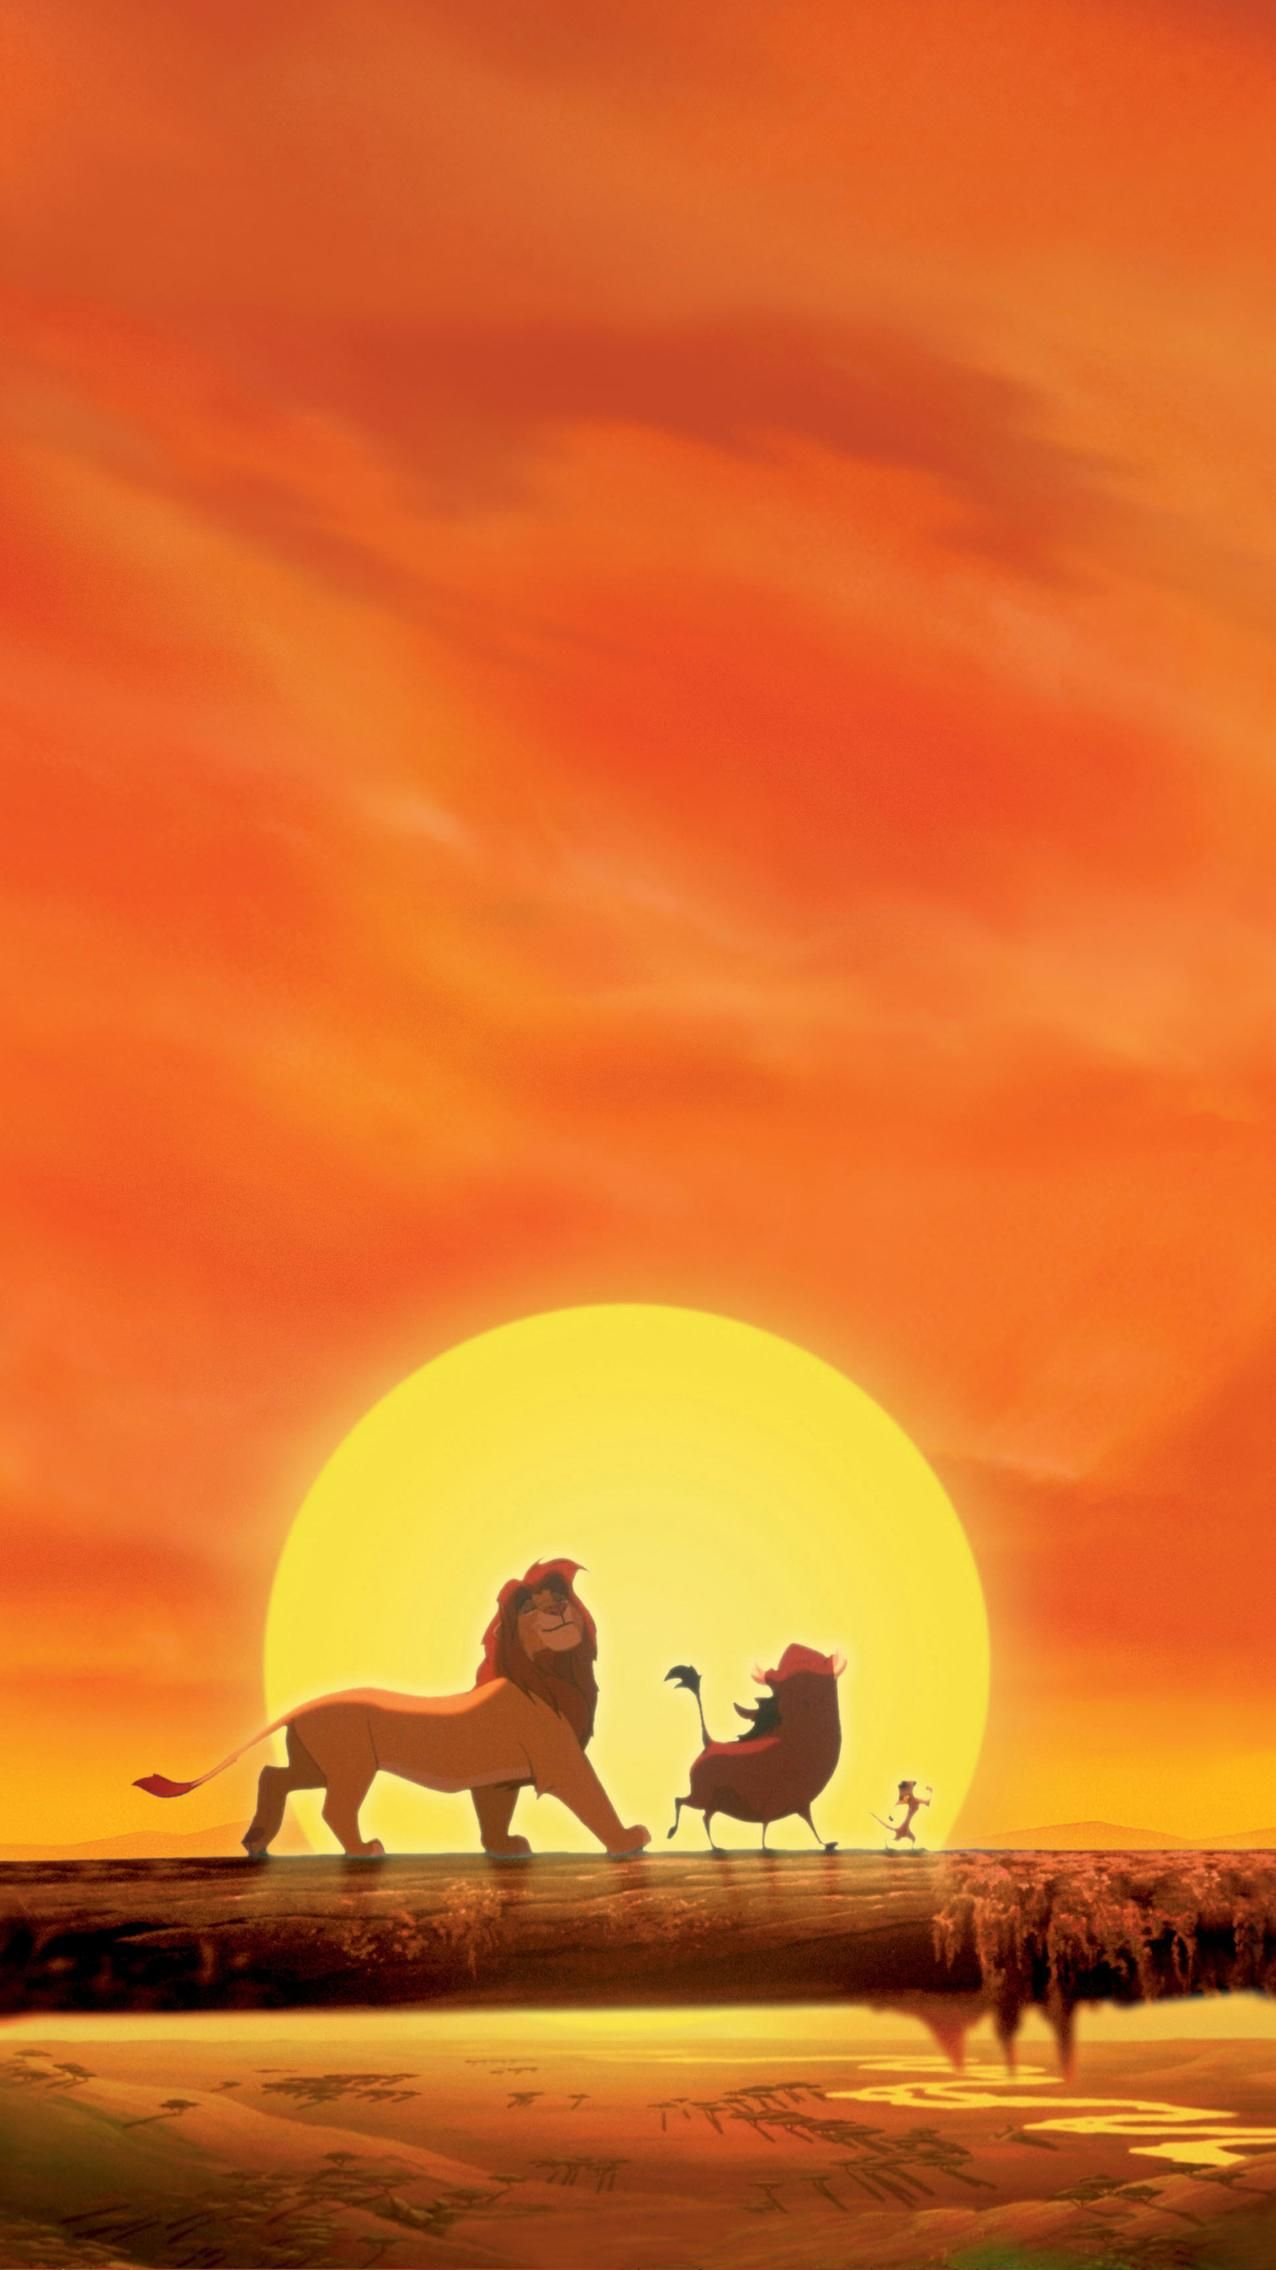 The Lion King 1994 Phone Wallpaper Disney Phone Wallpaper Lion King Movie The Lion King 1994